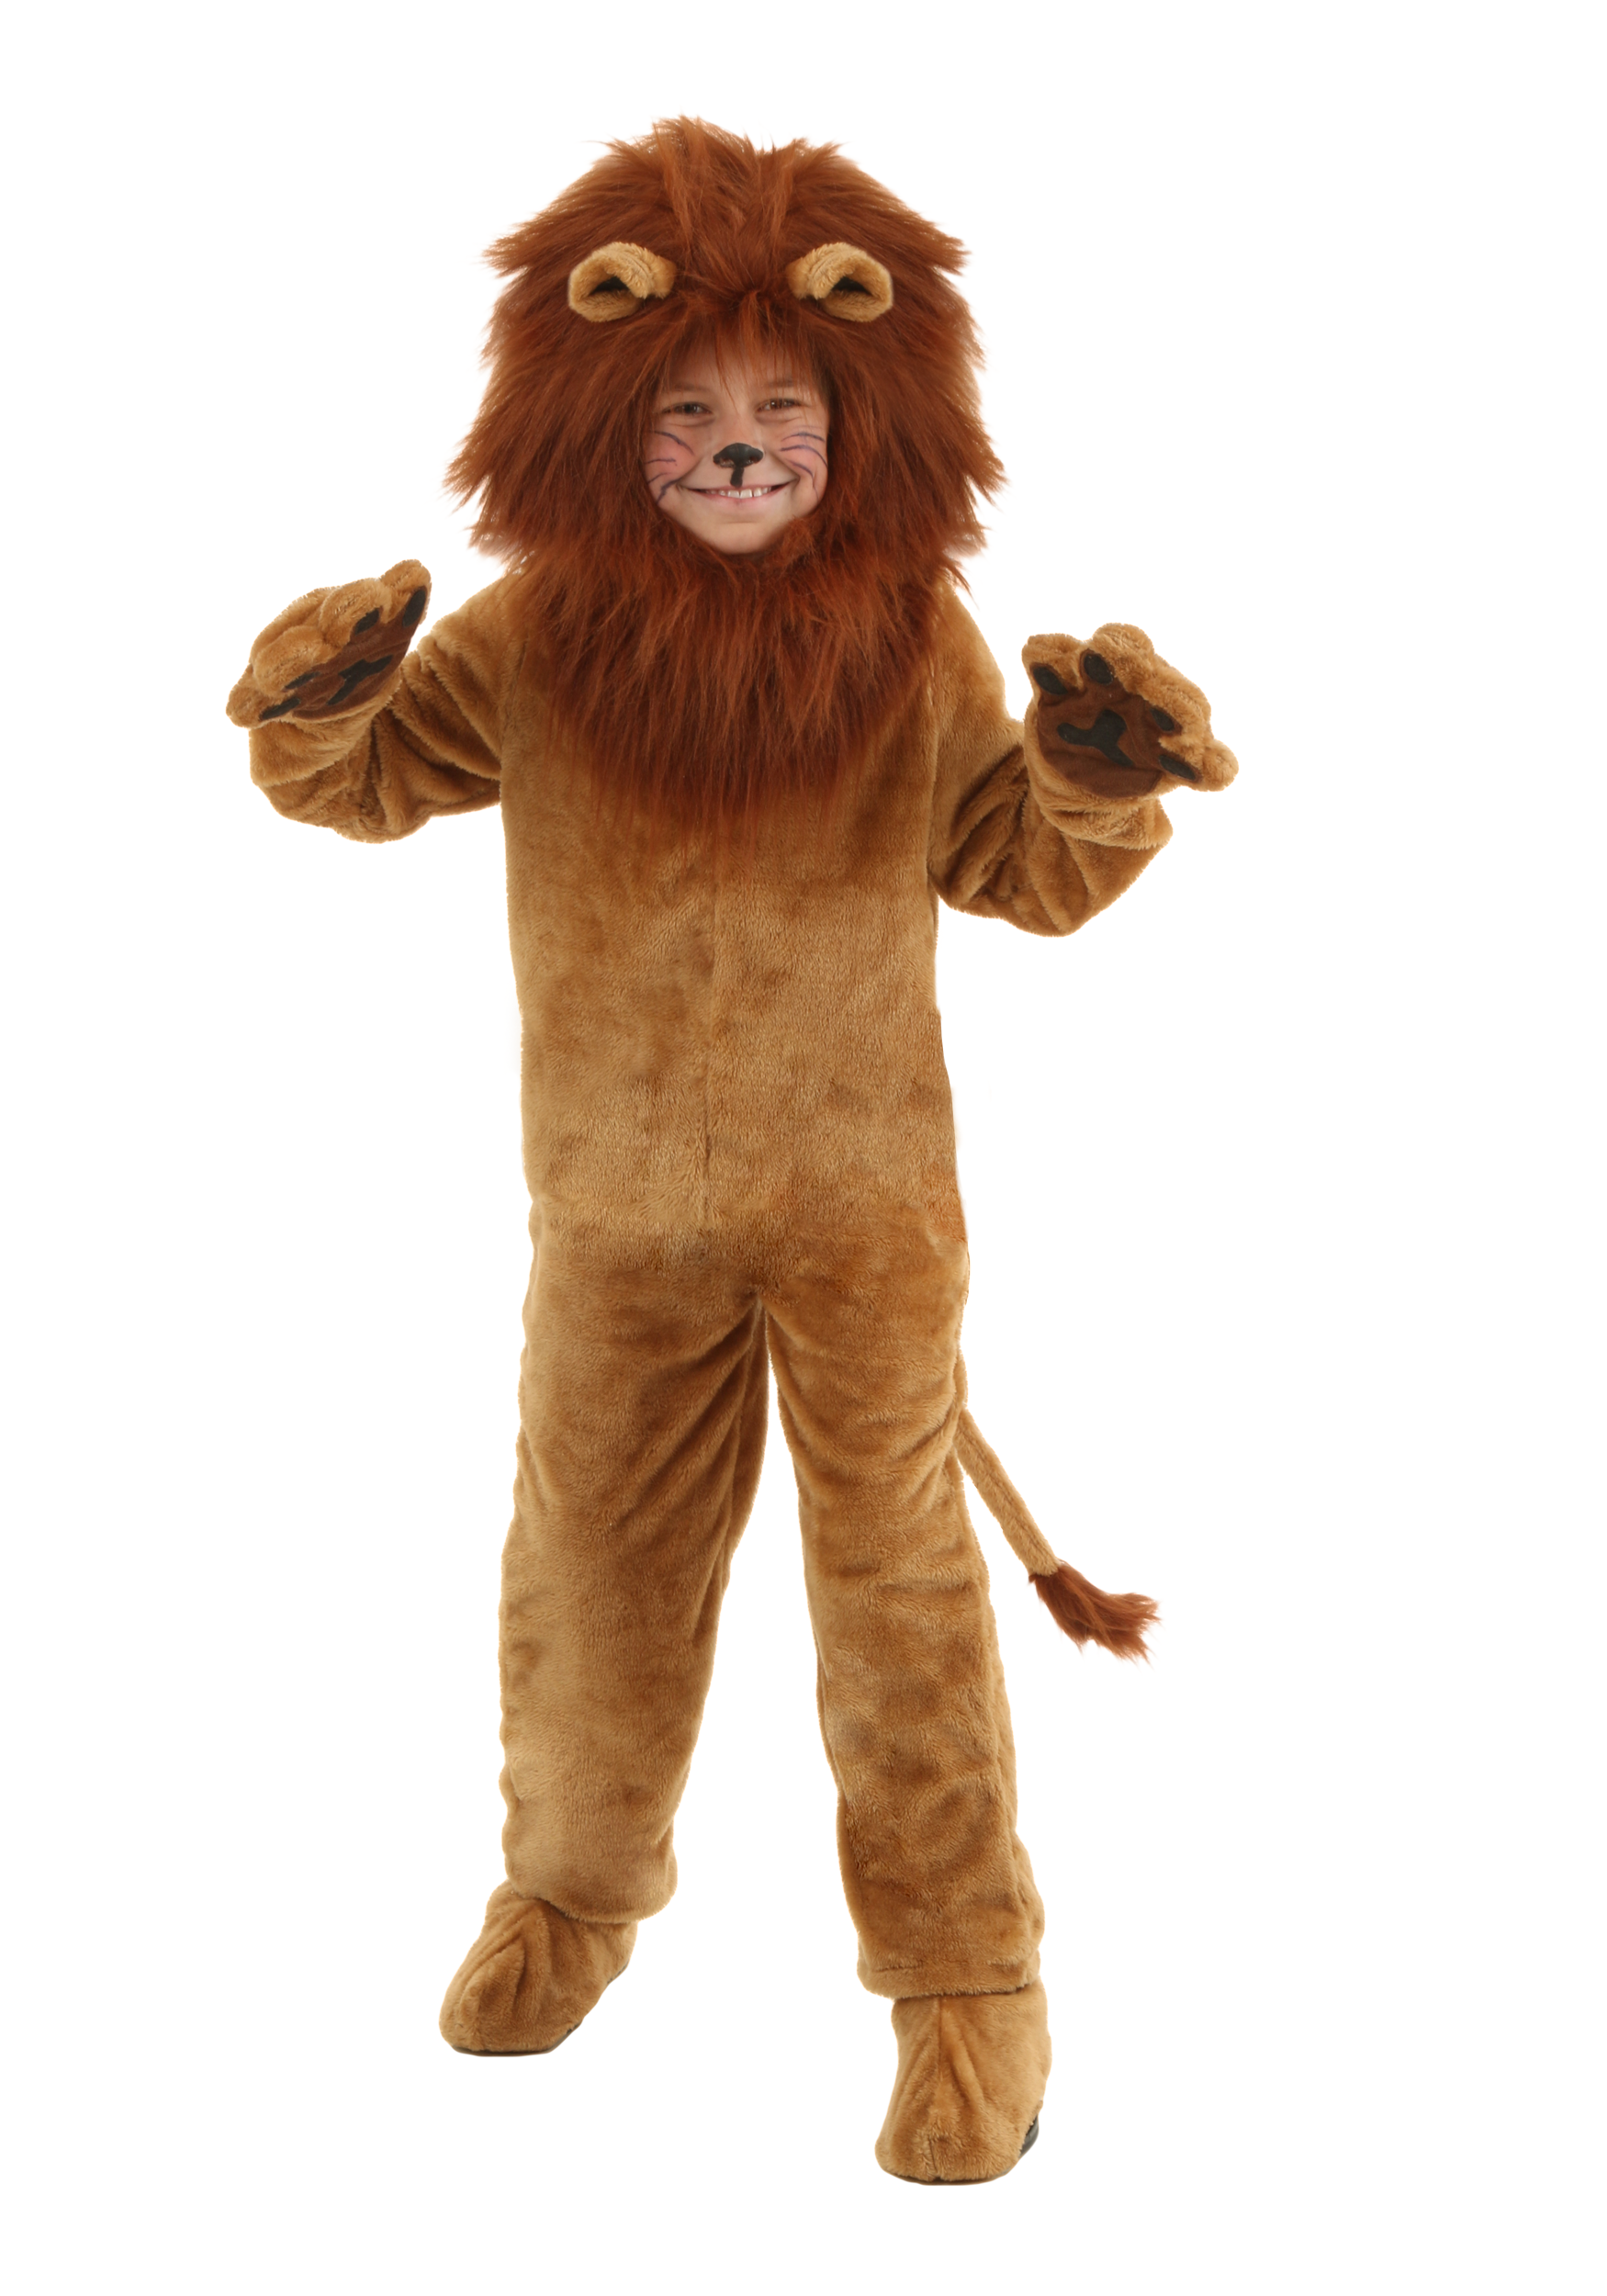 Wonderful wizard of oz costumes halloweencostumes child deluxe lion costume made by usexclusive solutioingenieria Images